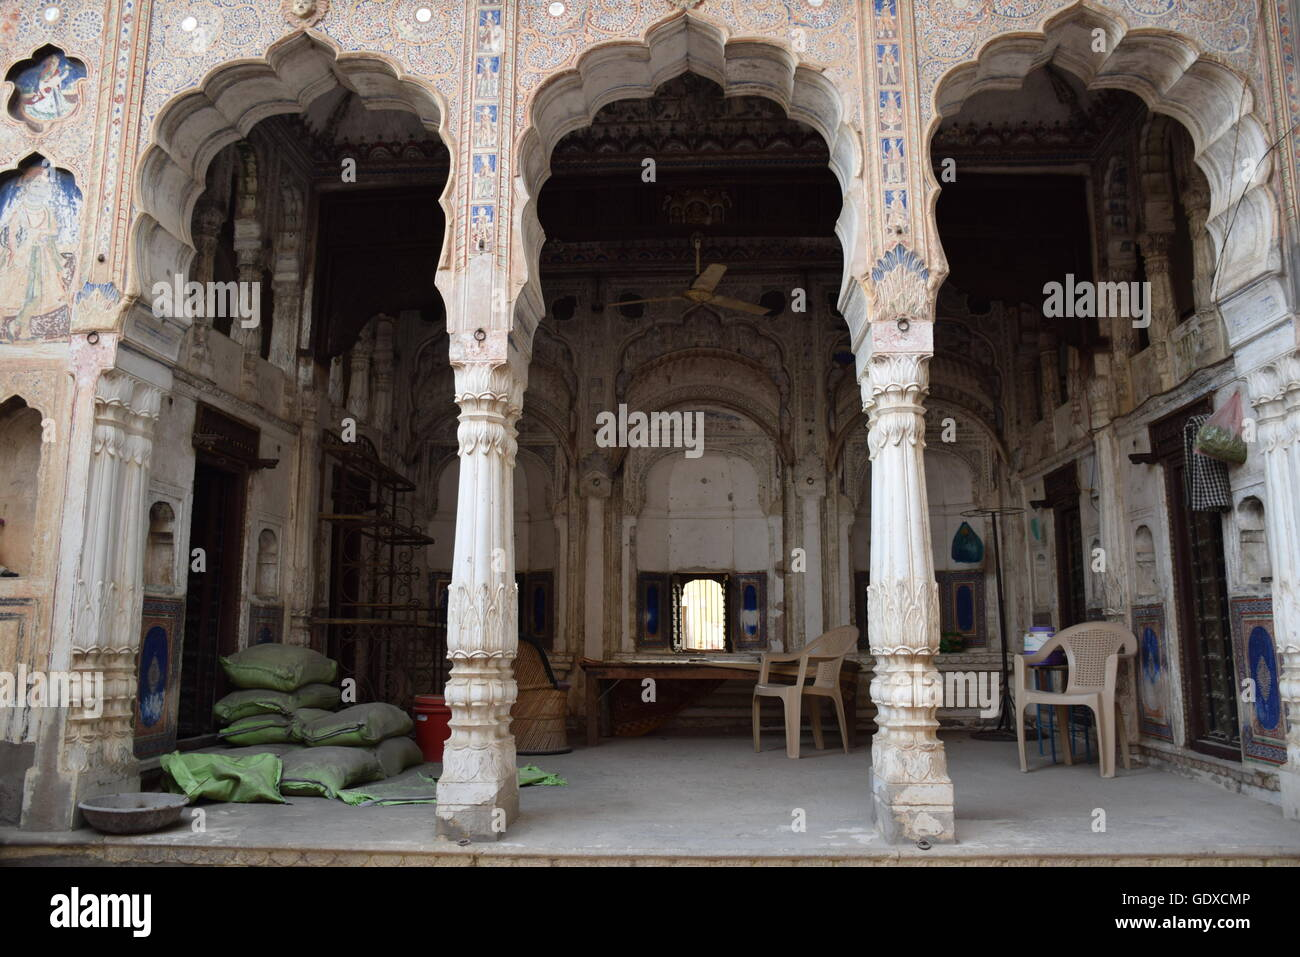 Courtyard of an old haveli in Mandawa, Rajasthan, India - Stock Image